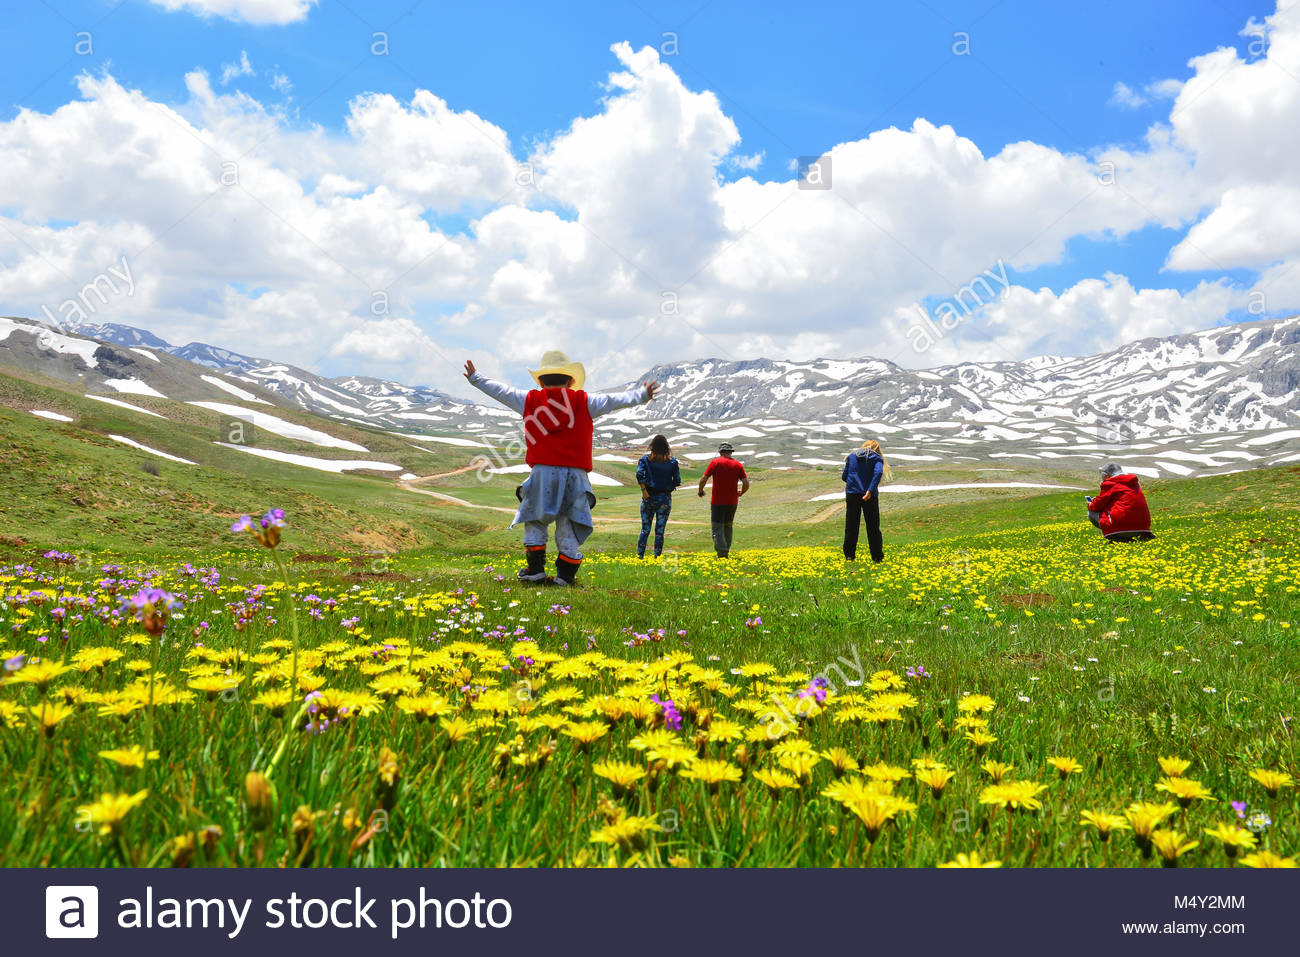 Spectacular nature sightseeing and fascinating landscapes - Stock Image